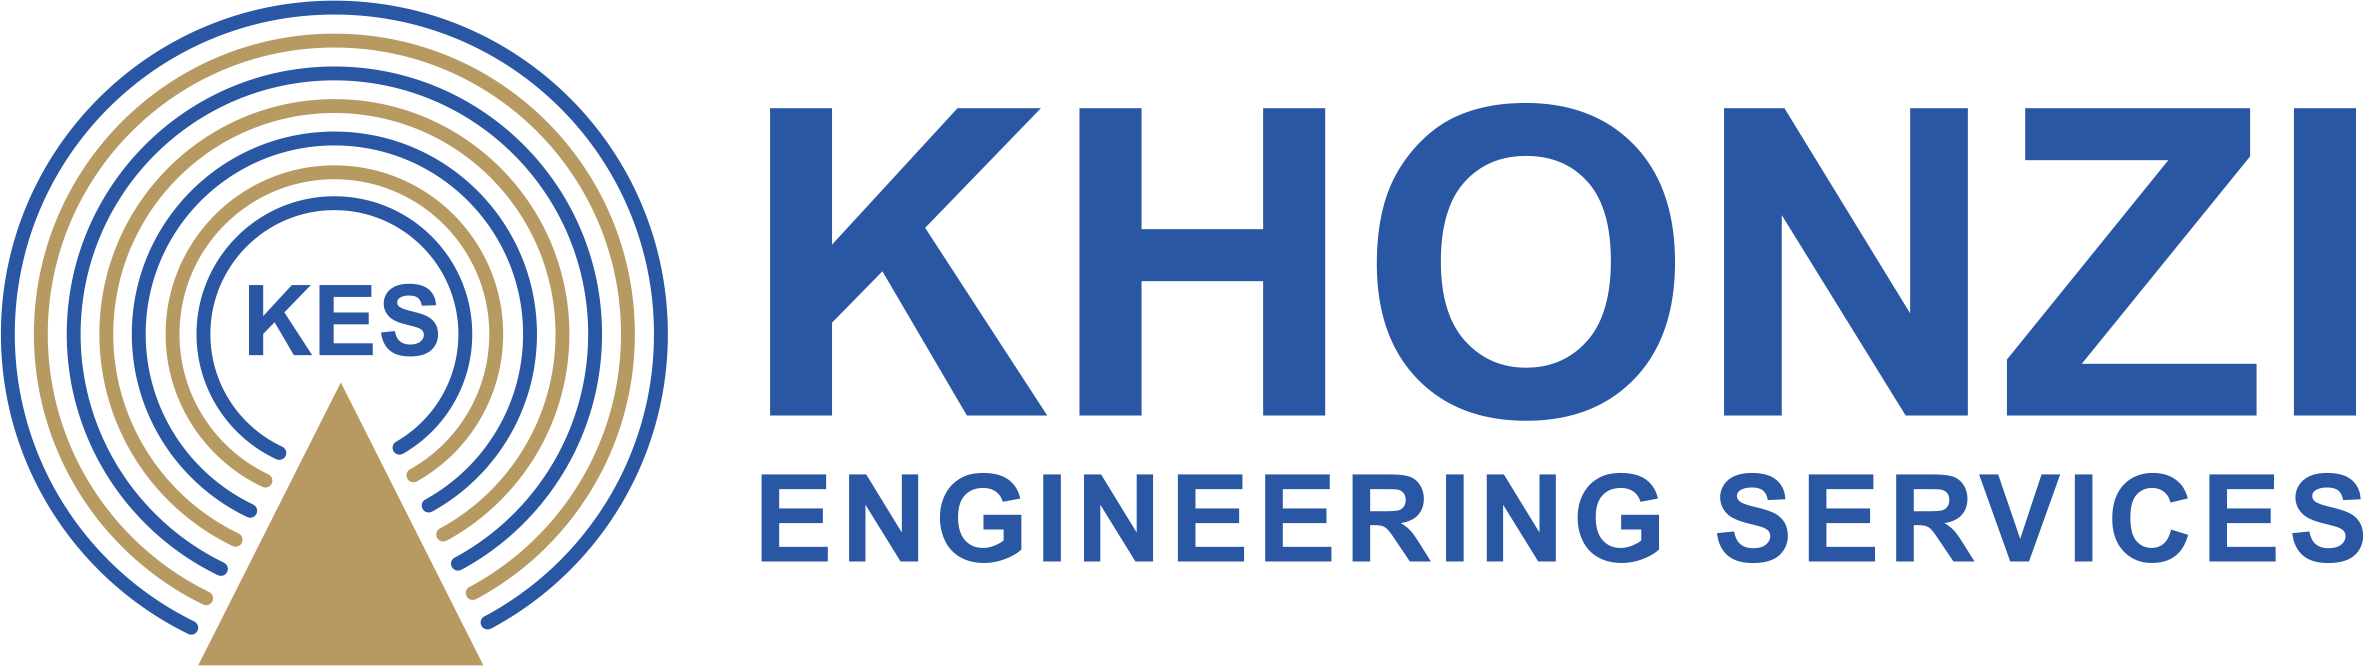 Khonzi Engineering